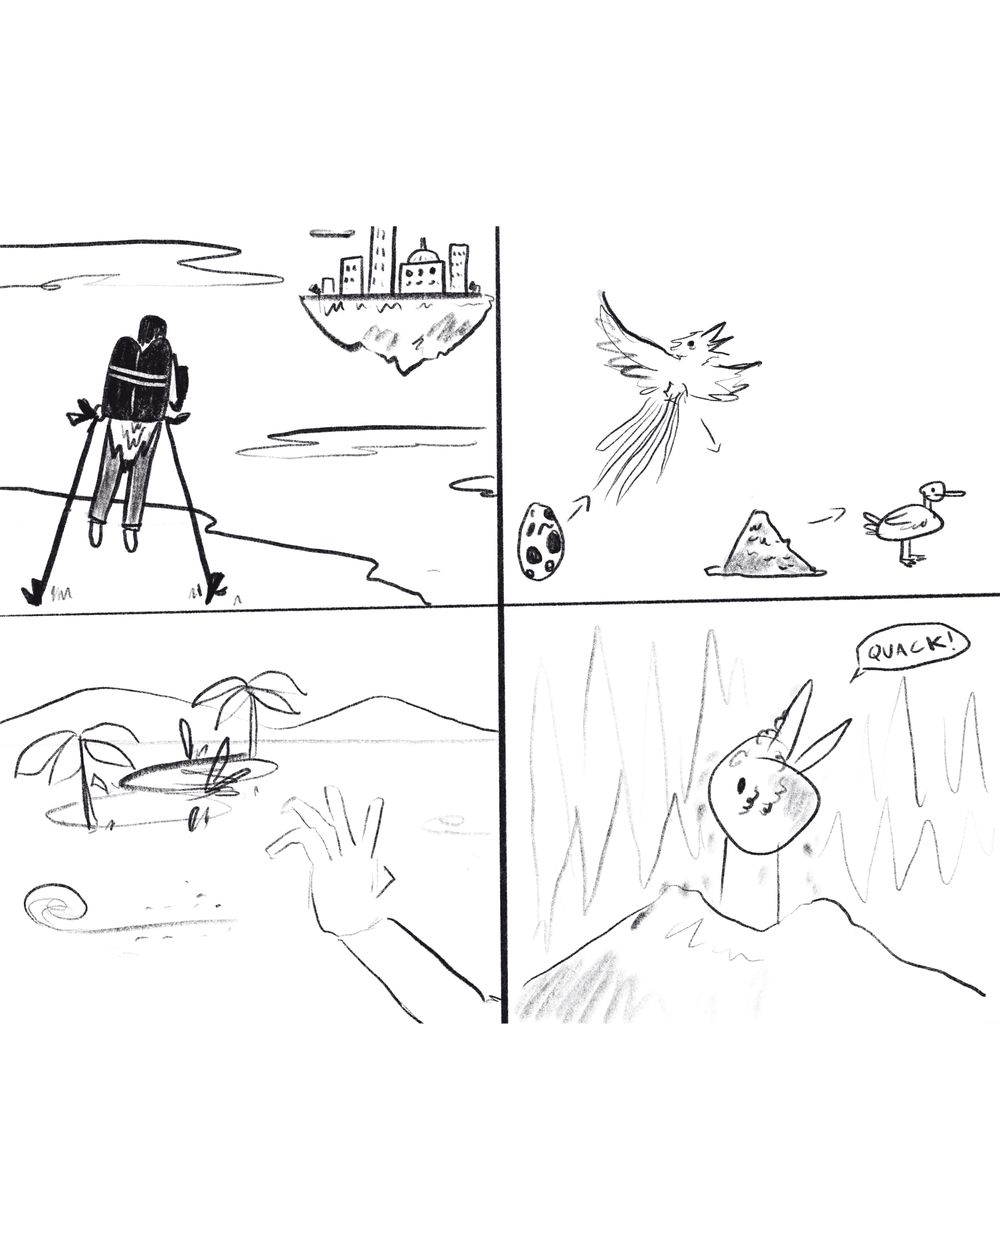 My editorial illustration (with sketches) - image 1 - student project